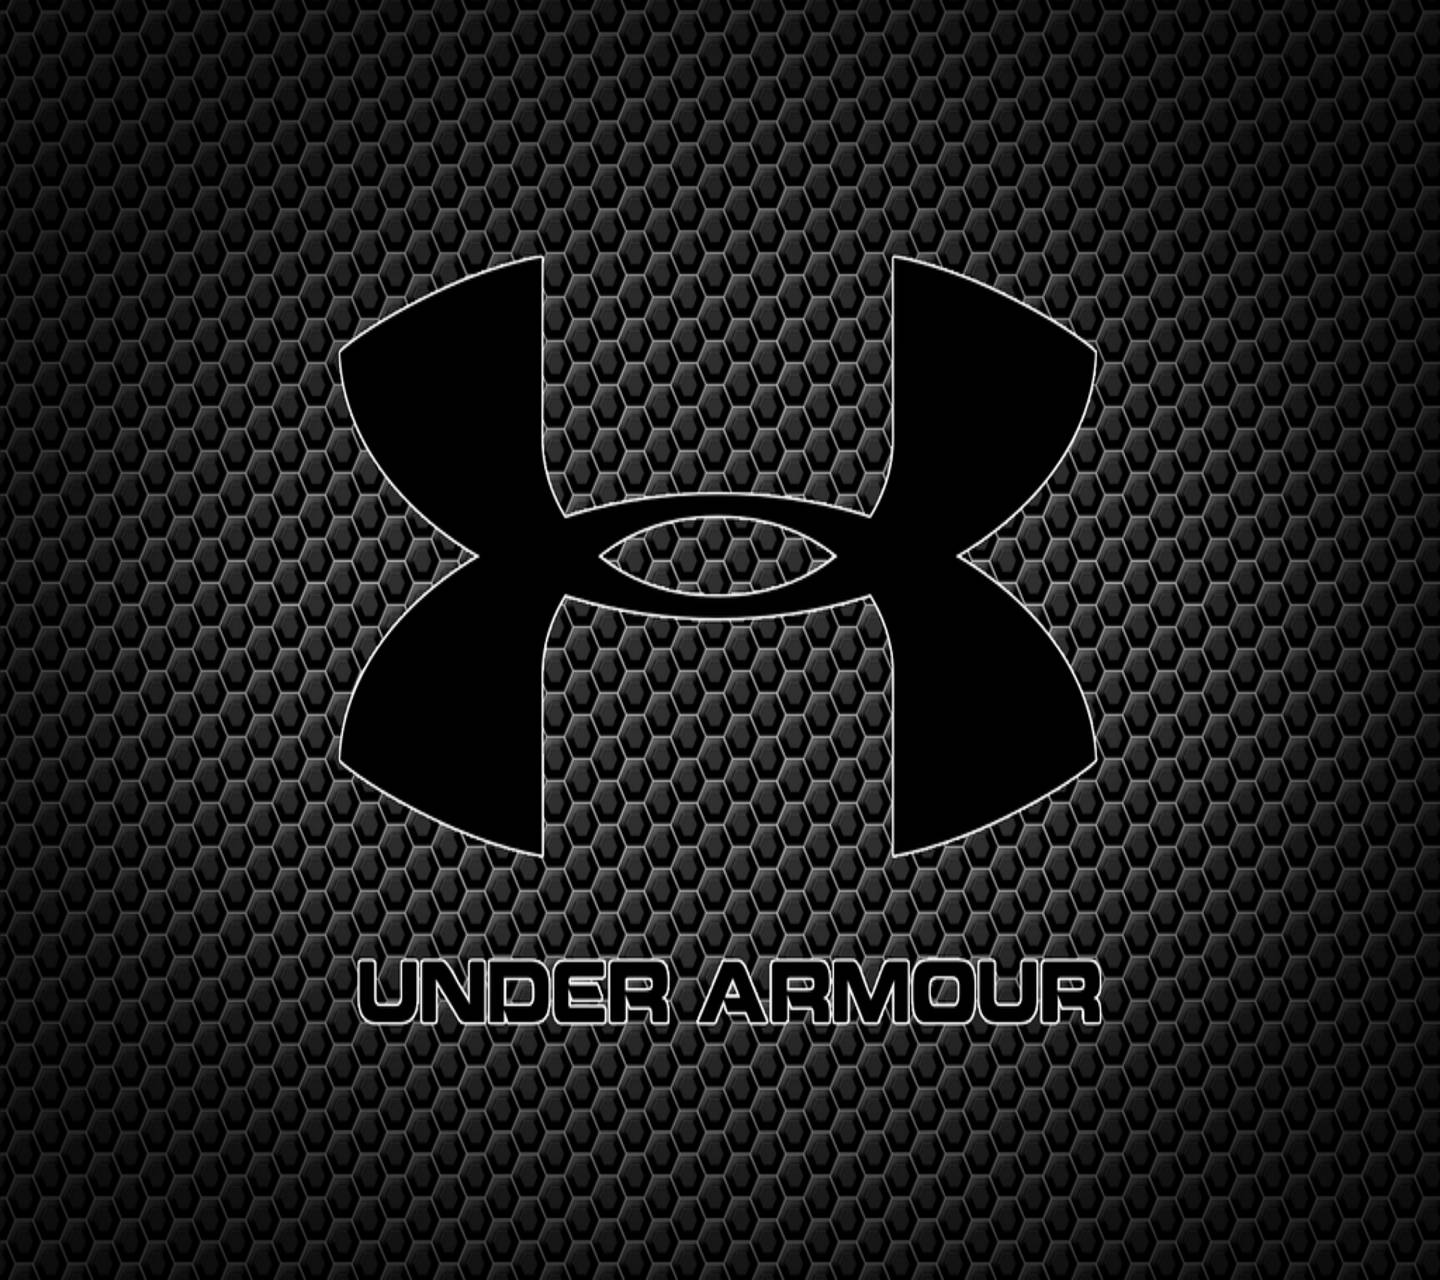 Under Armour Logo Wallpaper By Huskersjp A8 Free On Zedge